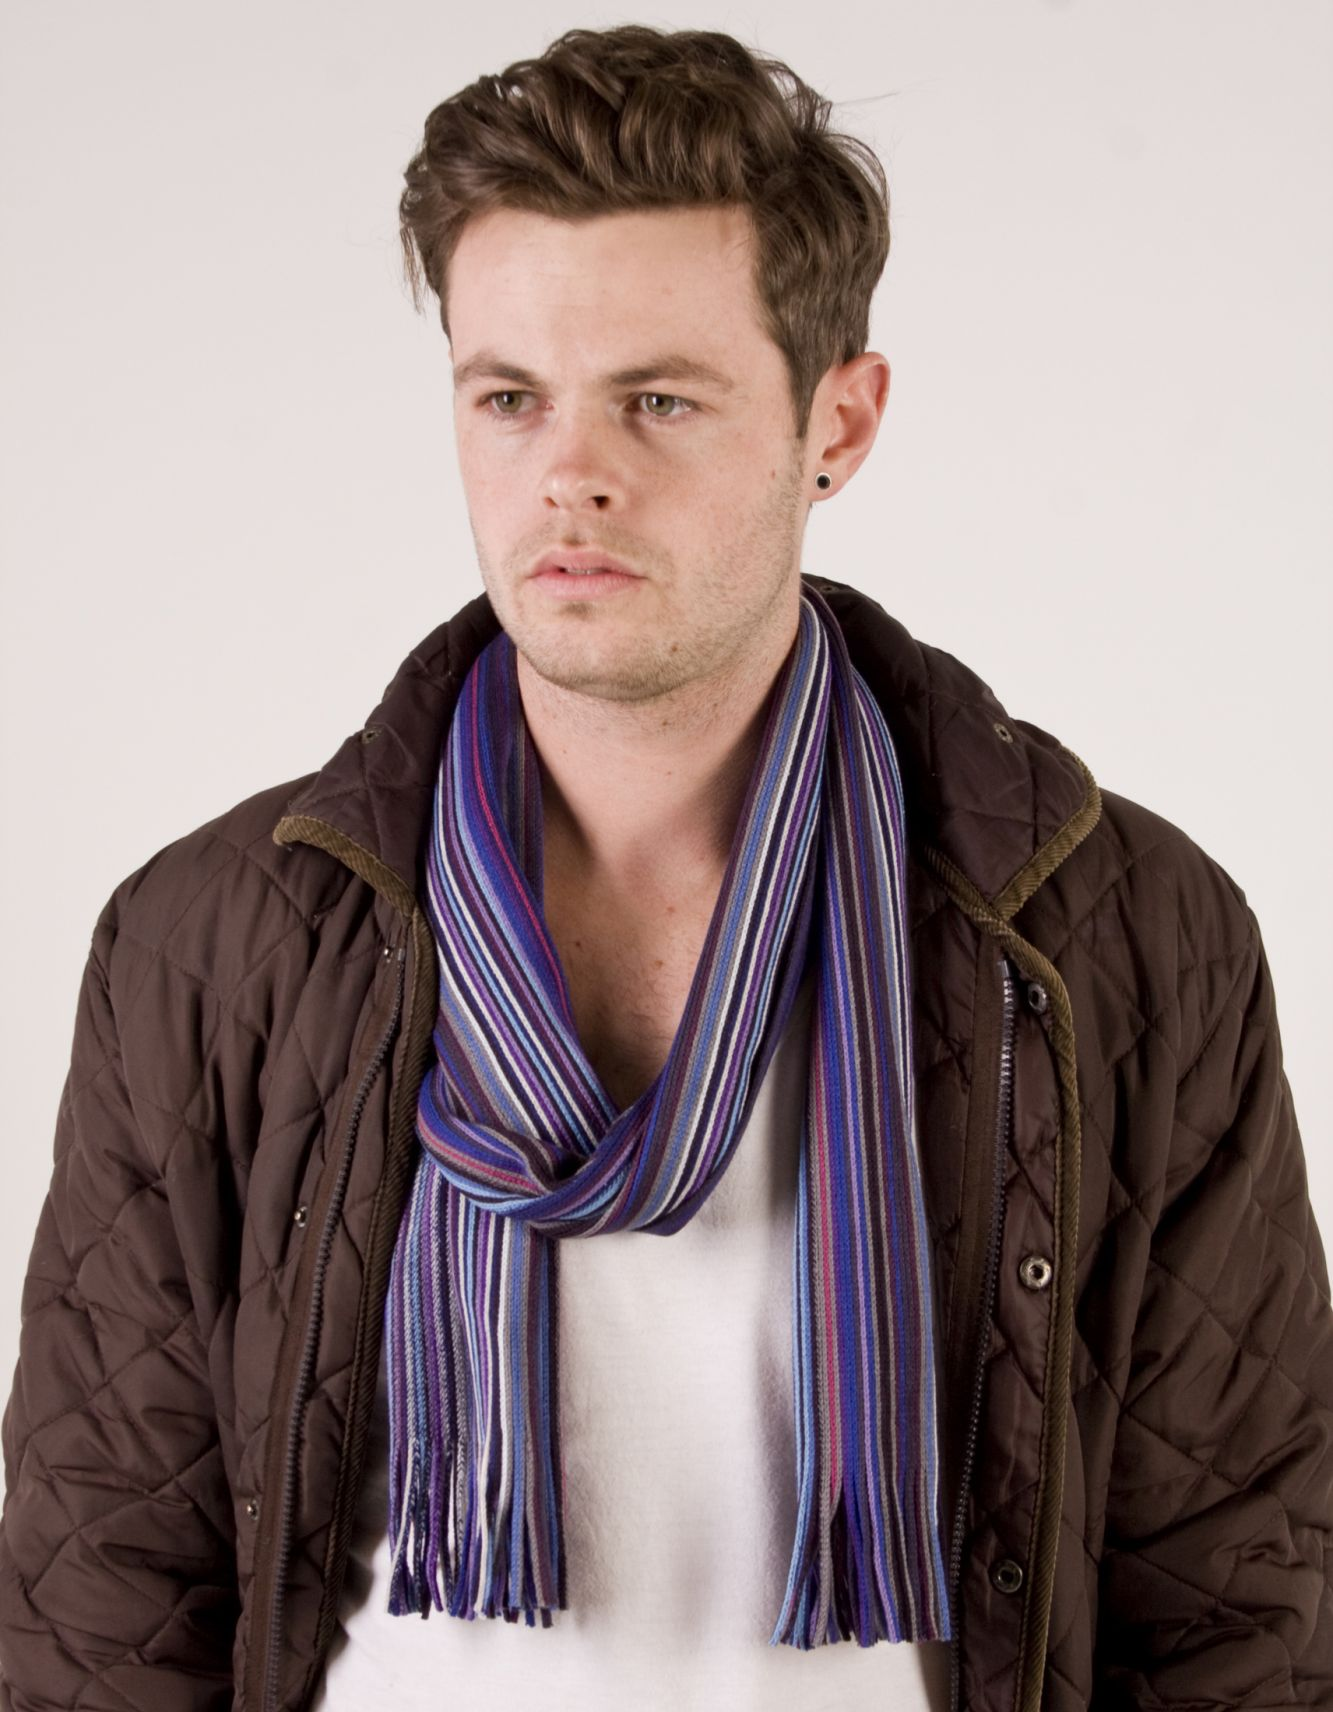 The Tie Bar has a large selection of men's scarves at a great value.